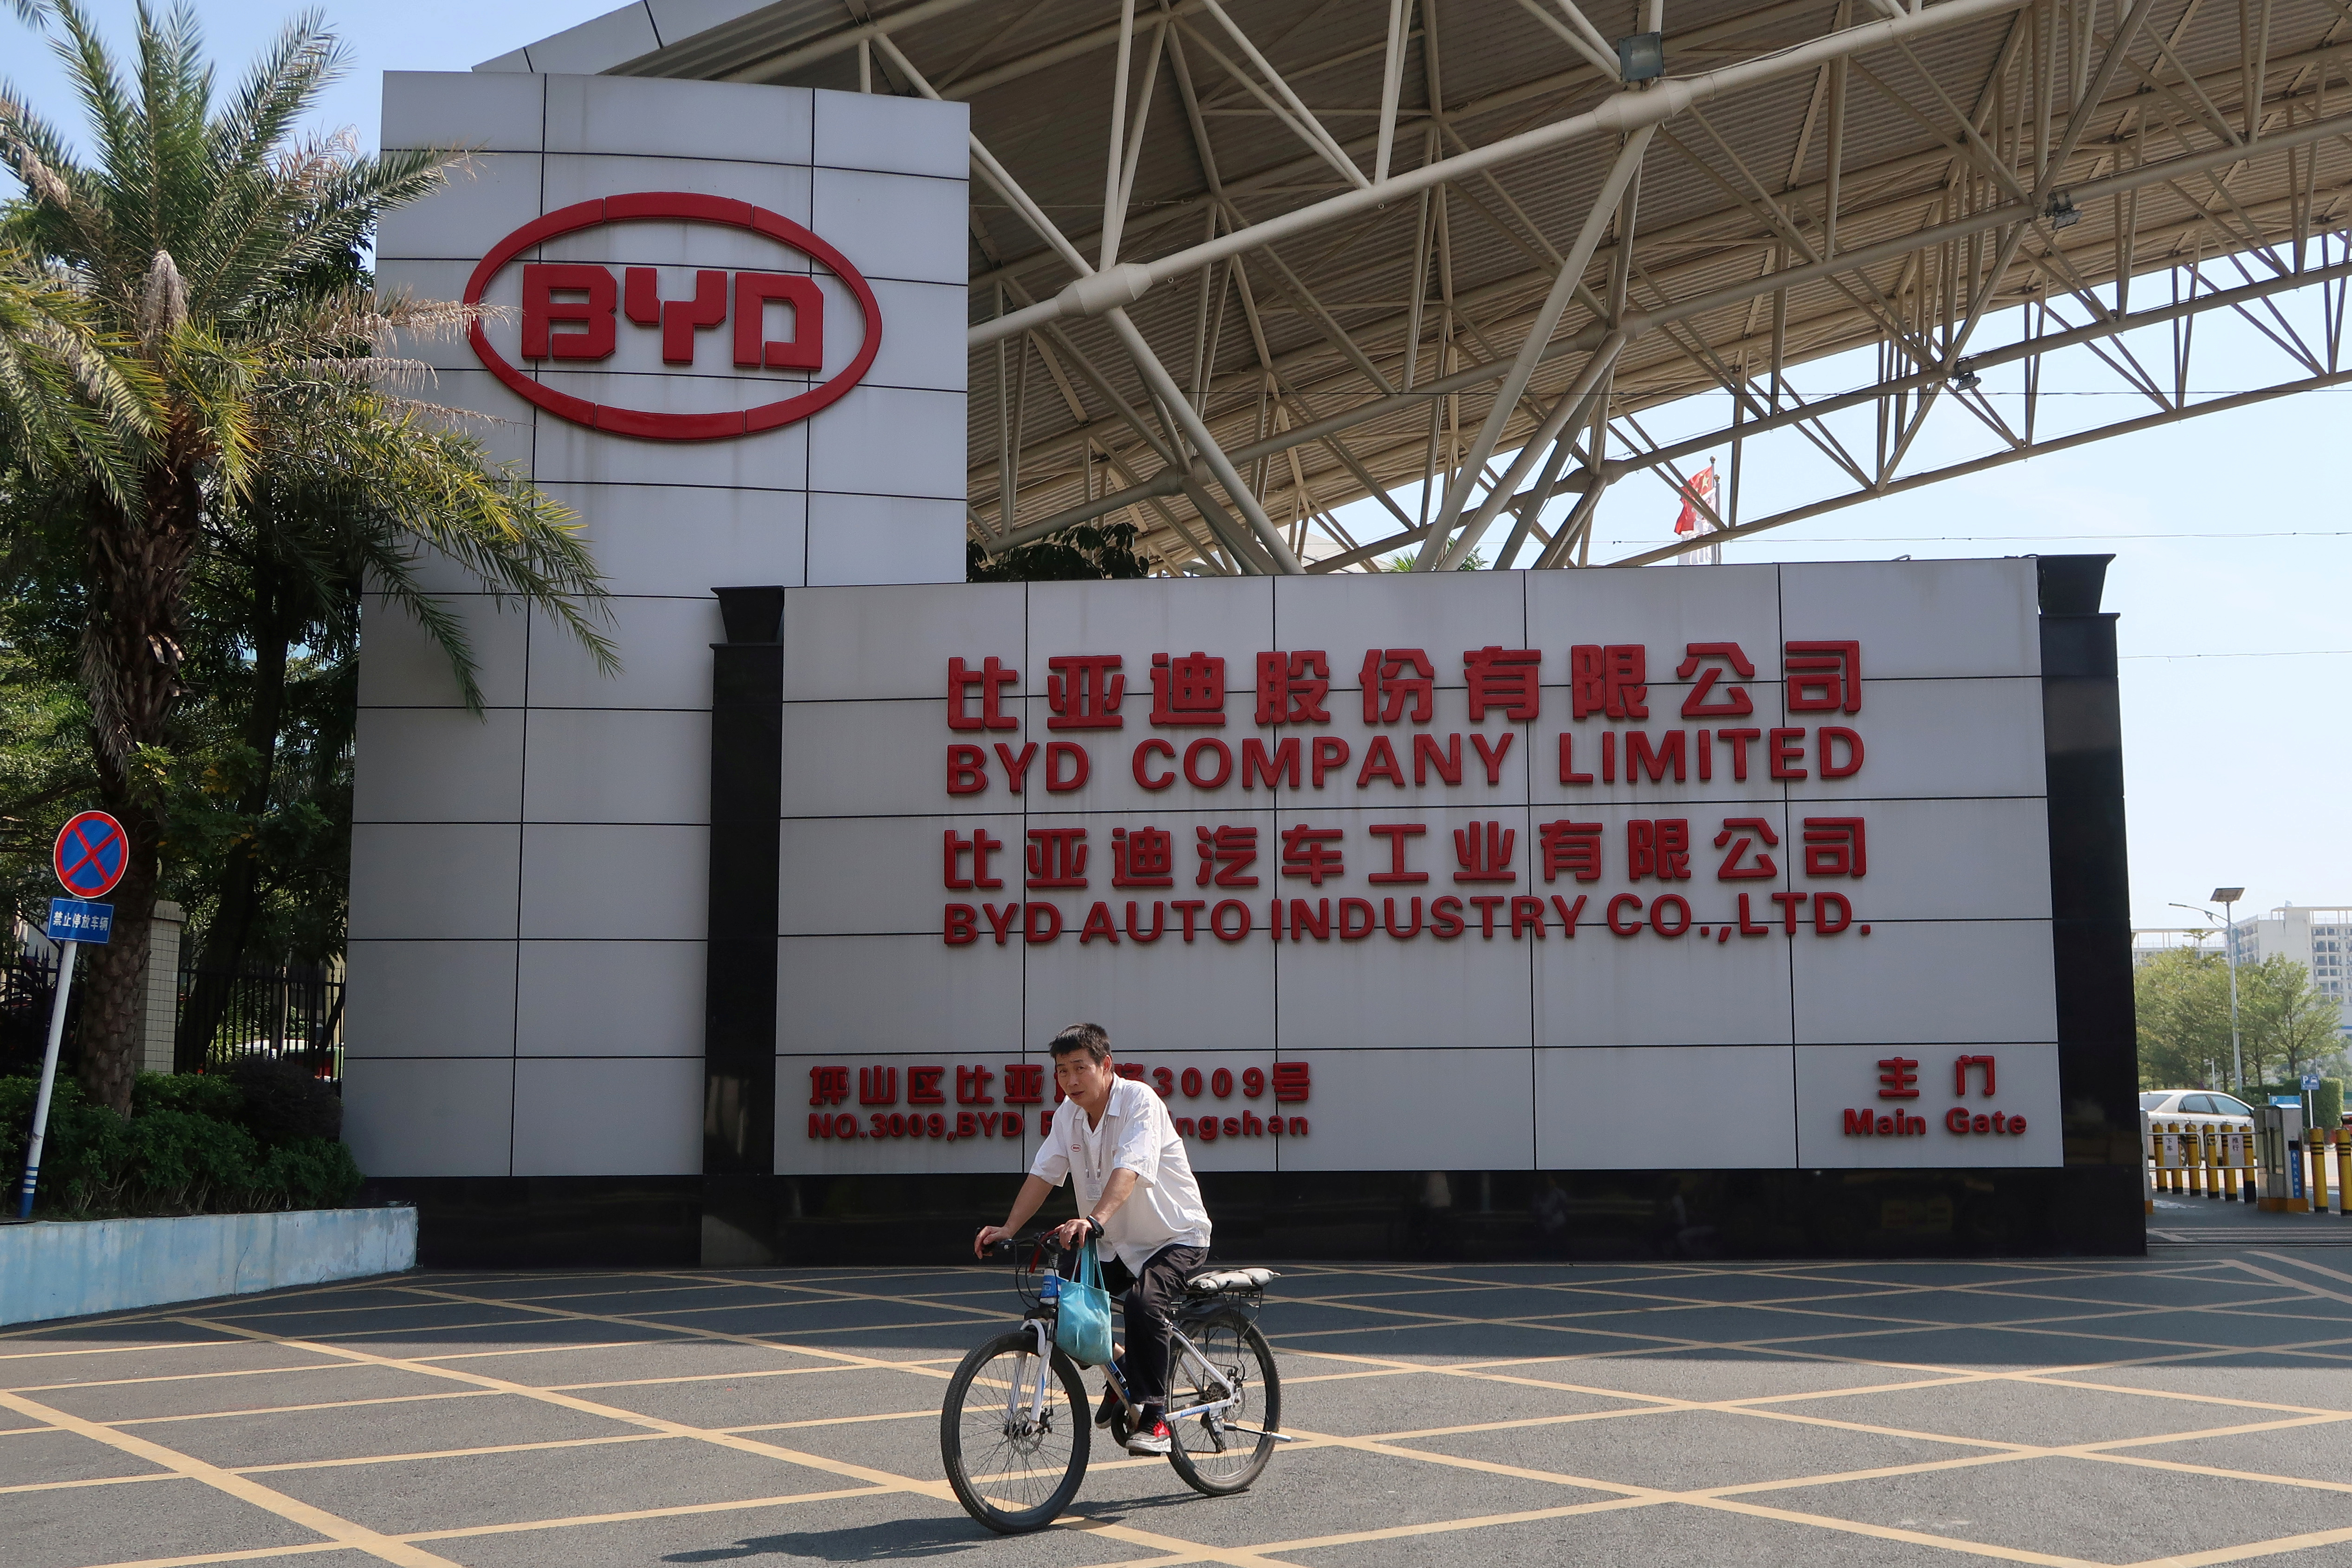 A man cycles past an entrance to the headquarters of Chinese electric car maker BYD in Shenzhen's Pingshan district, Guangdong province, China October 25, 2019. REUTERS/Yilei Sun/File Photo